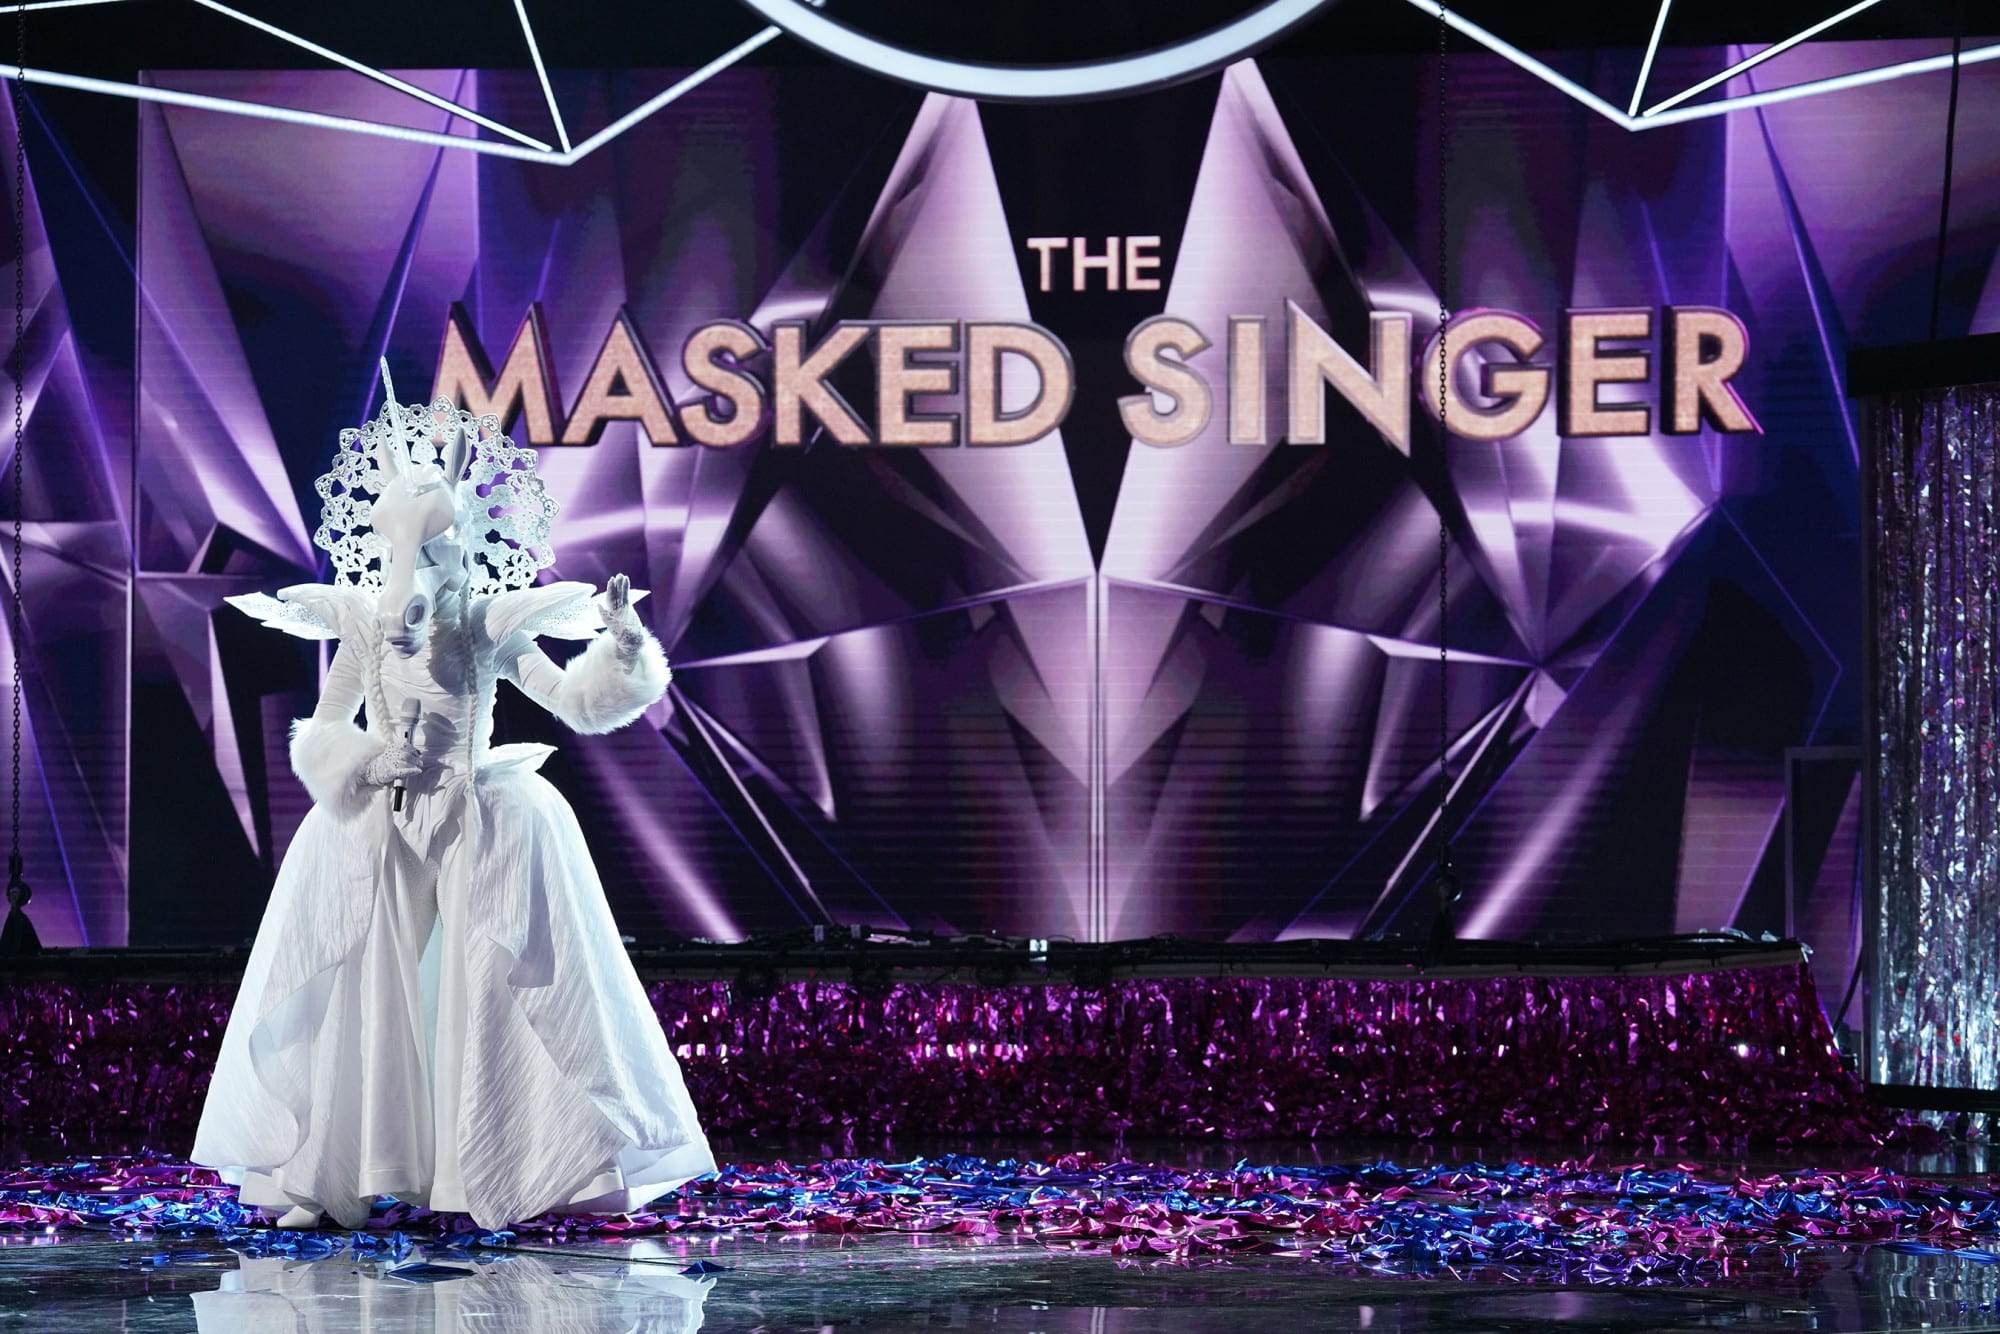 The Masked Singer 1 Episode 3 Clues and Guesses (PHOTOS + VIDEO)